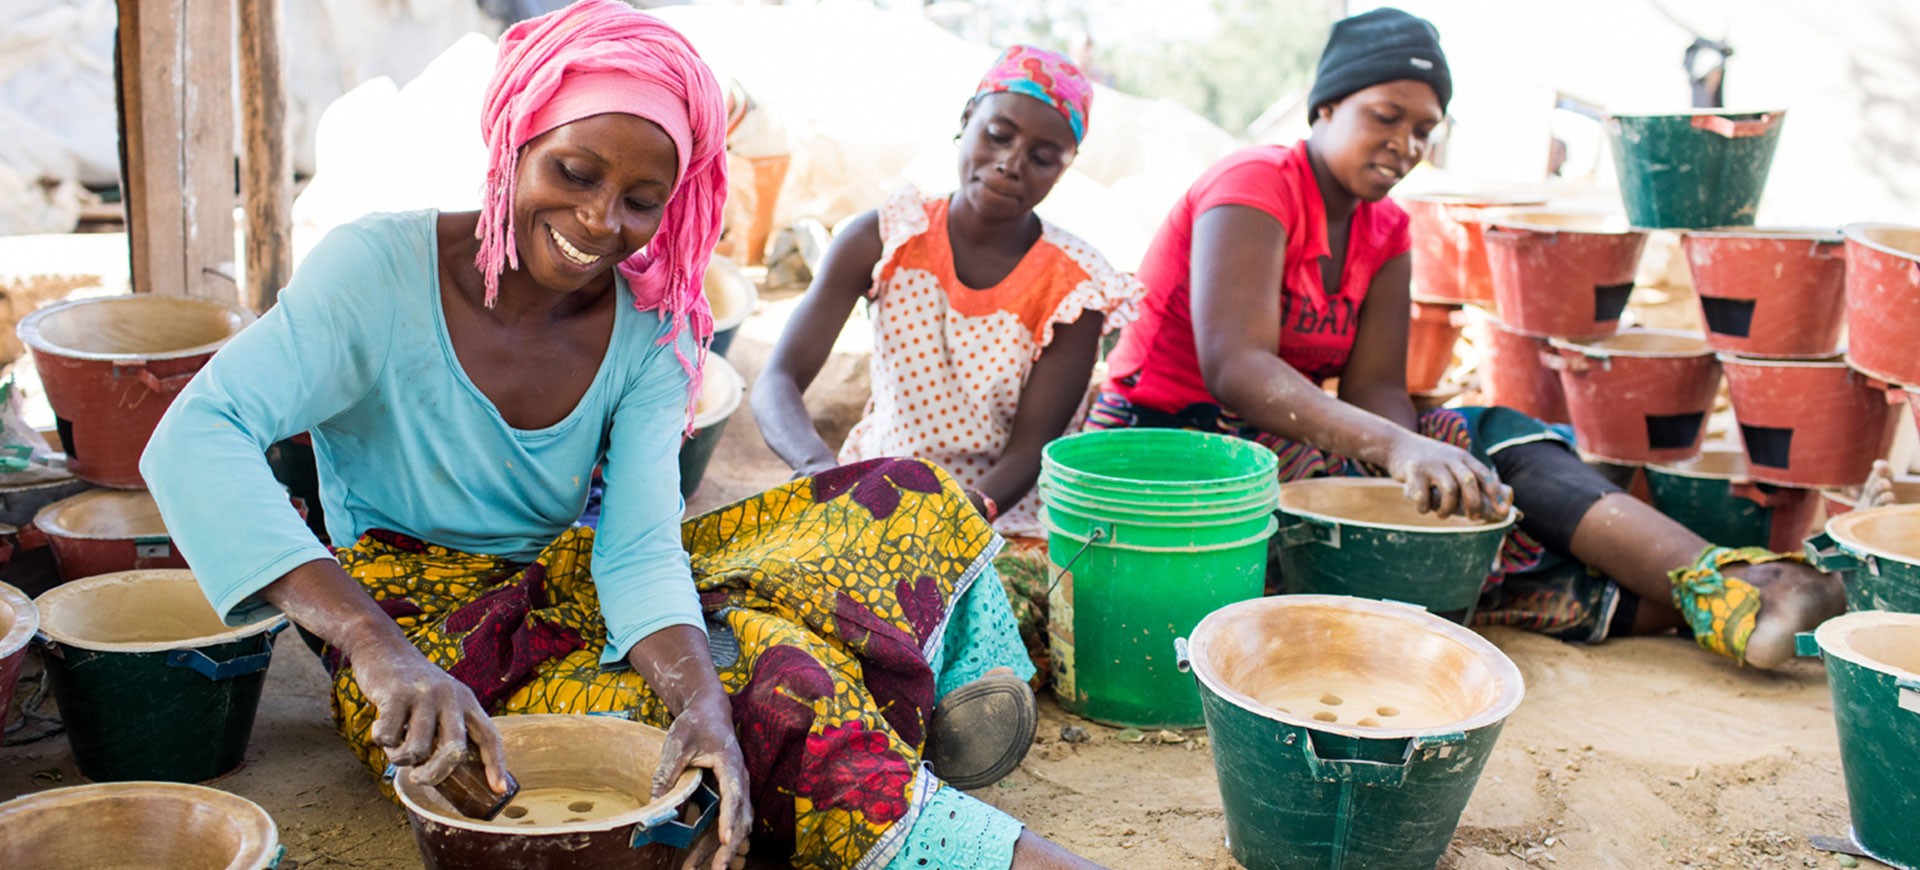 Three women smiling while making stoves.